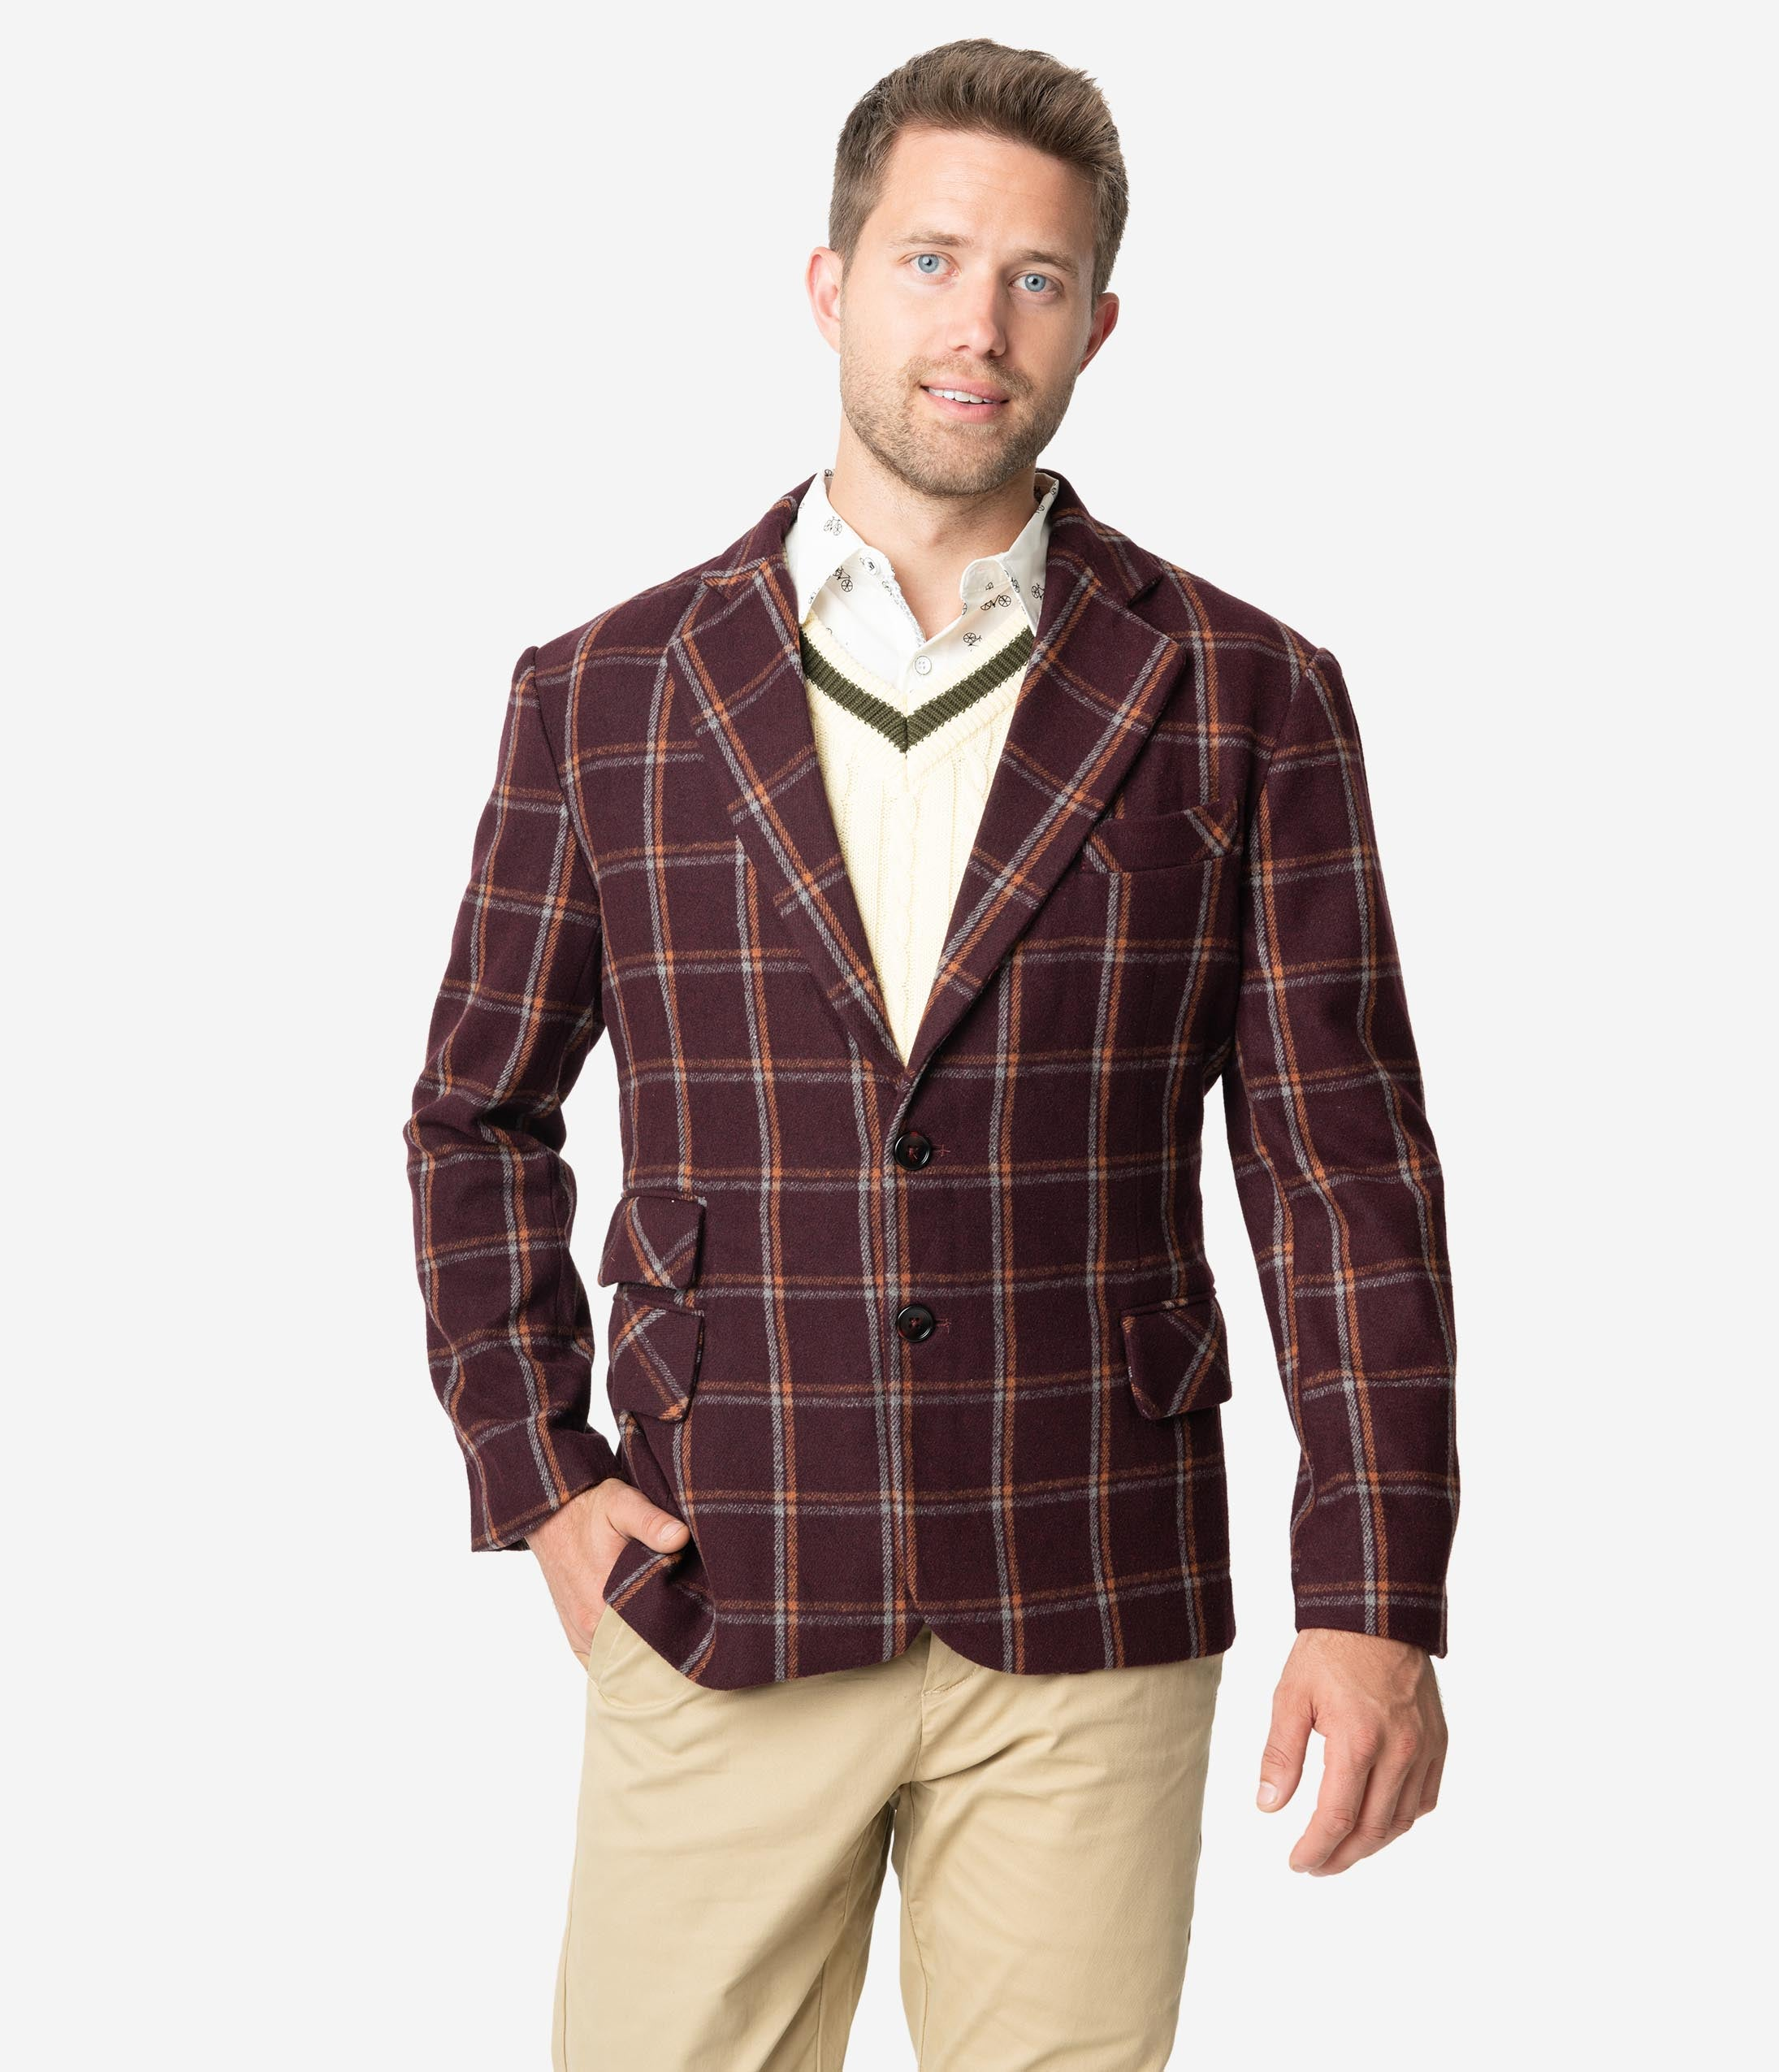 1960s Menswear Outfits | 60s Fashion for Guys Collectif 1960S Burgundy John Check Mens Blazer $78.00 AT vintagedancer.com